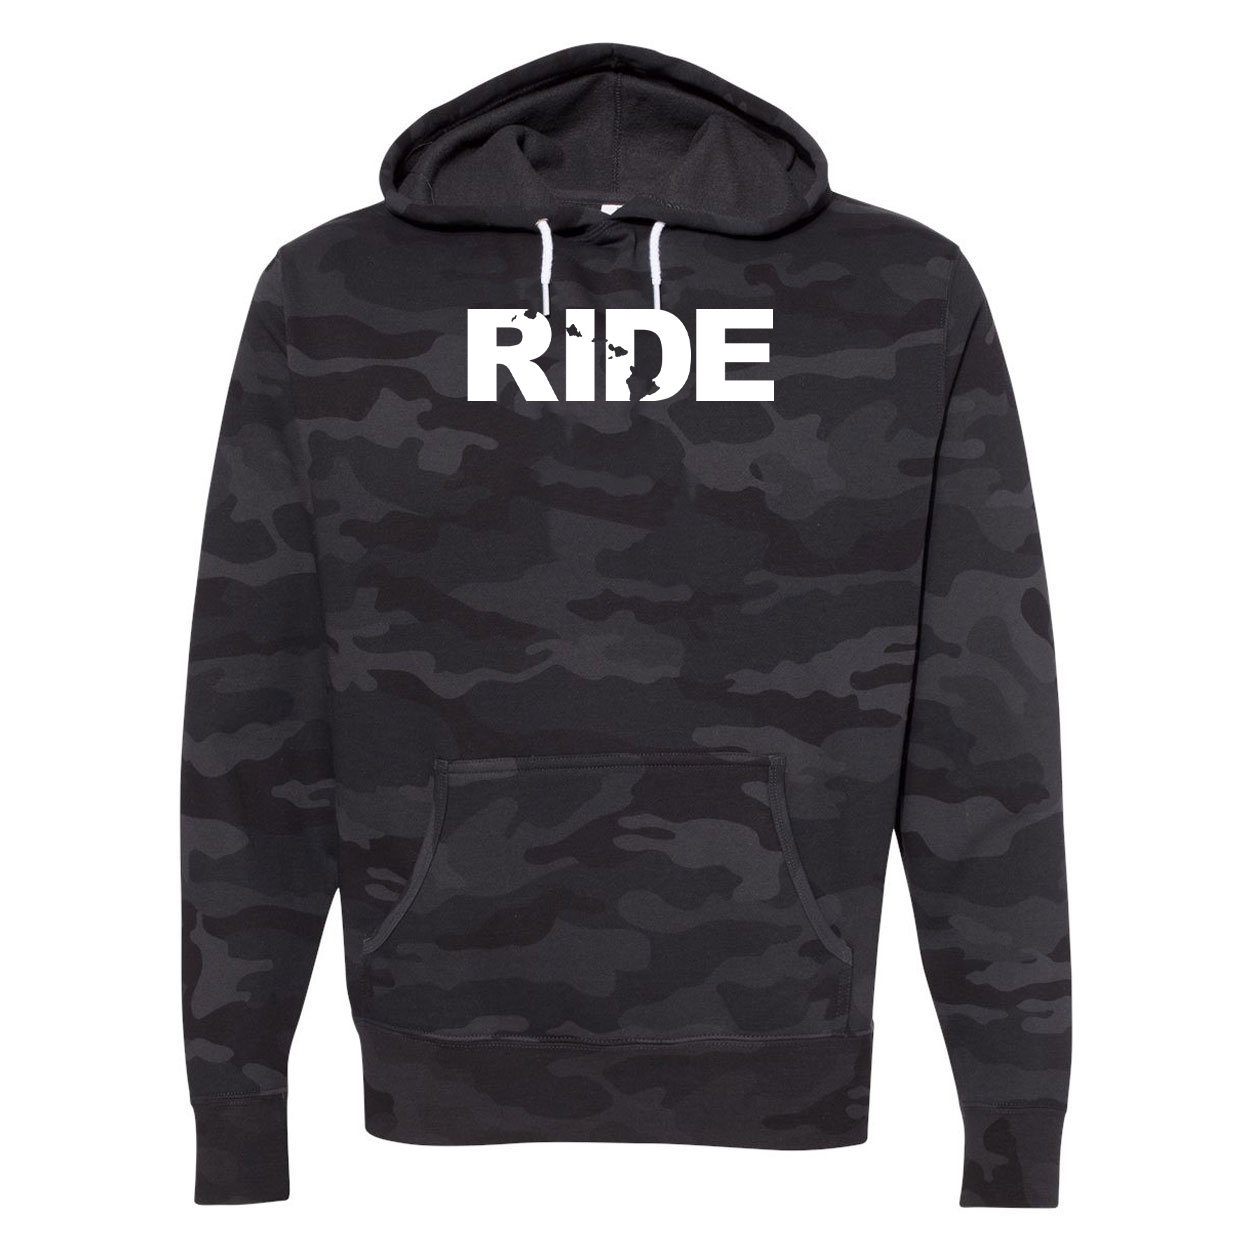 Ride Hawaii Classic Unisex Hooded Sweatshirt Black Camo (White Logo)